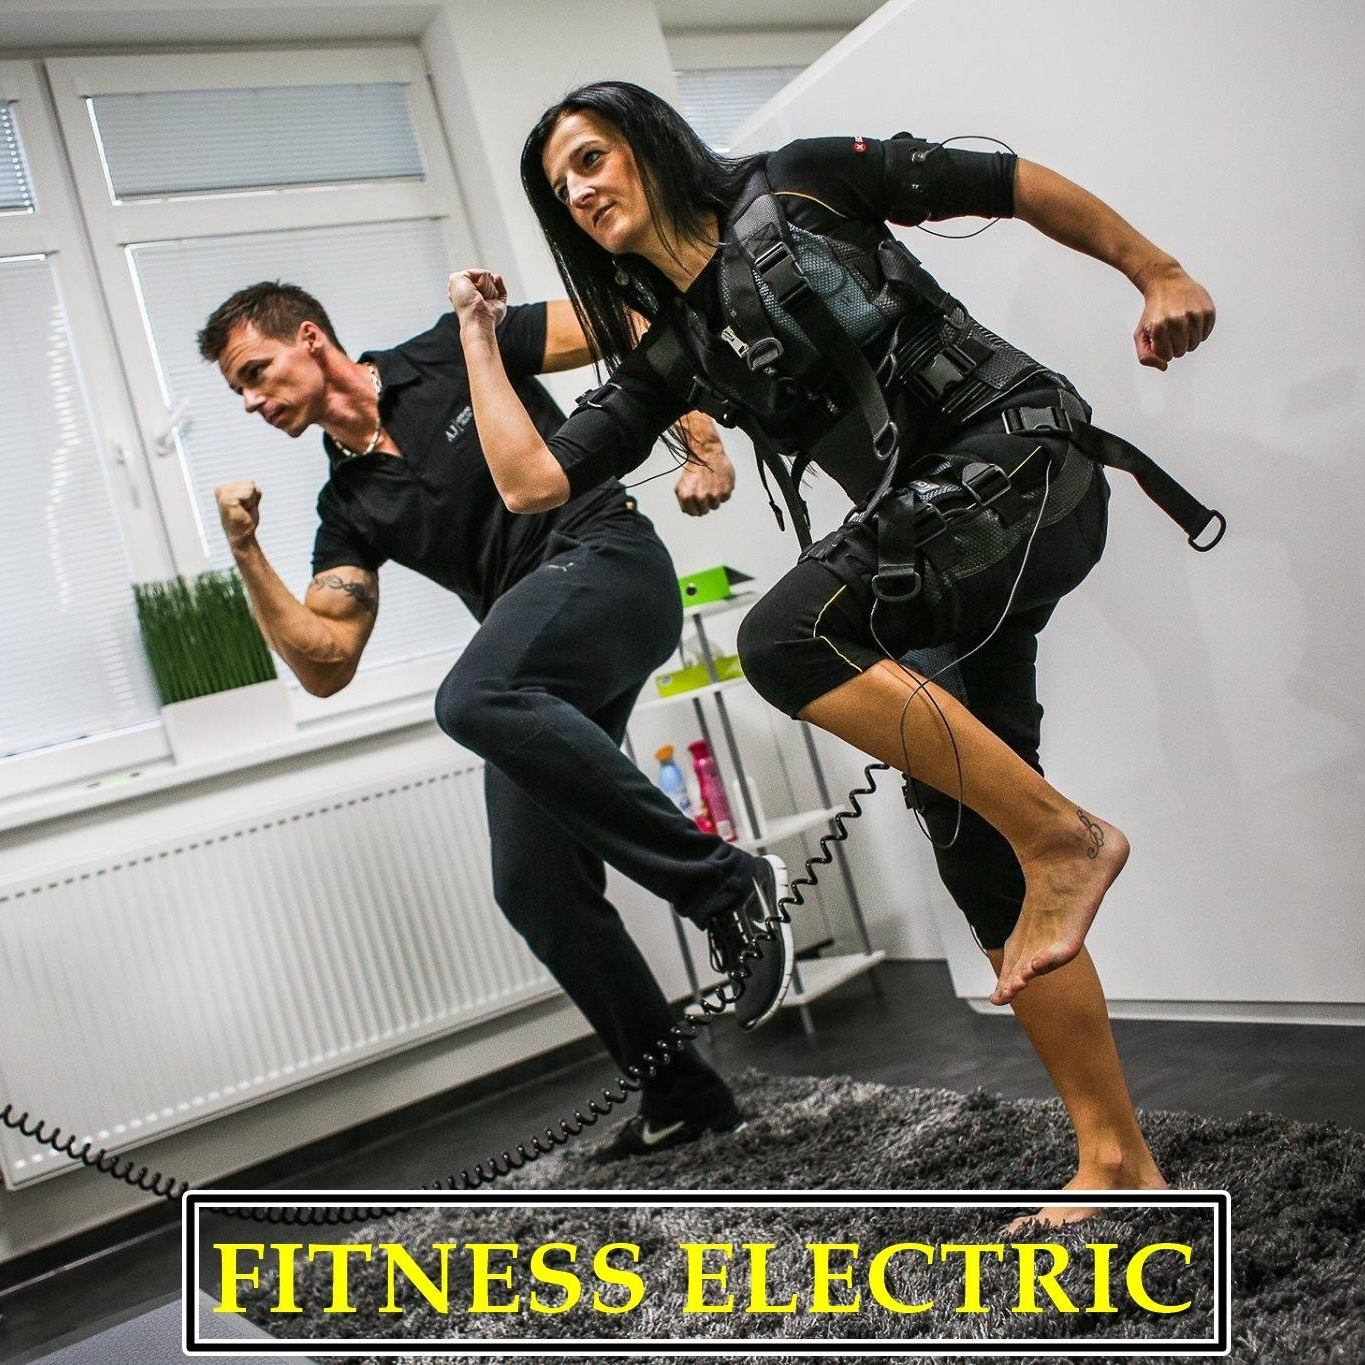 Fitness Electric